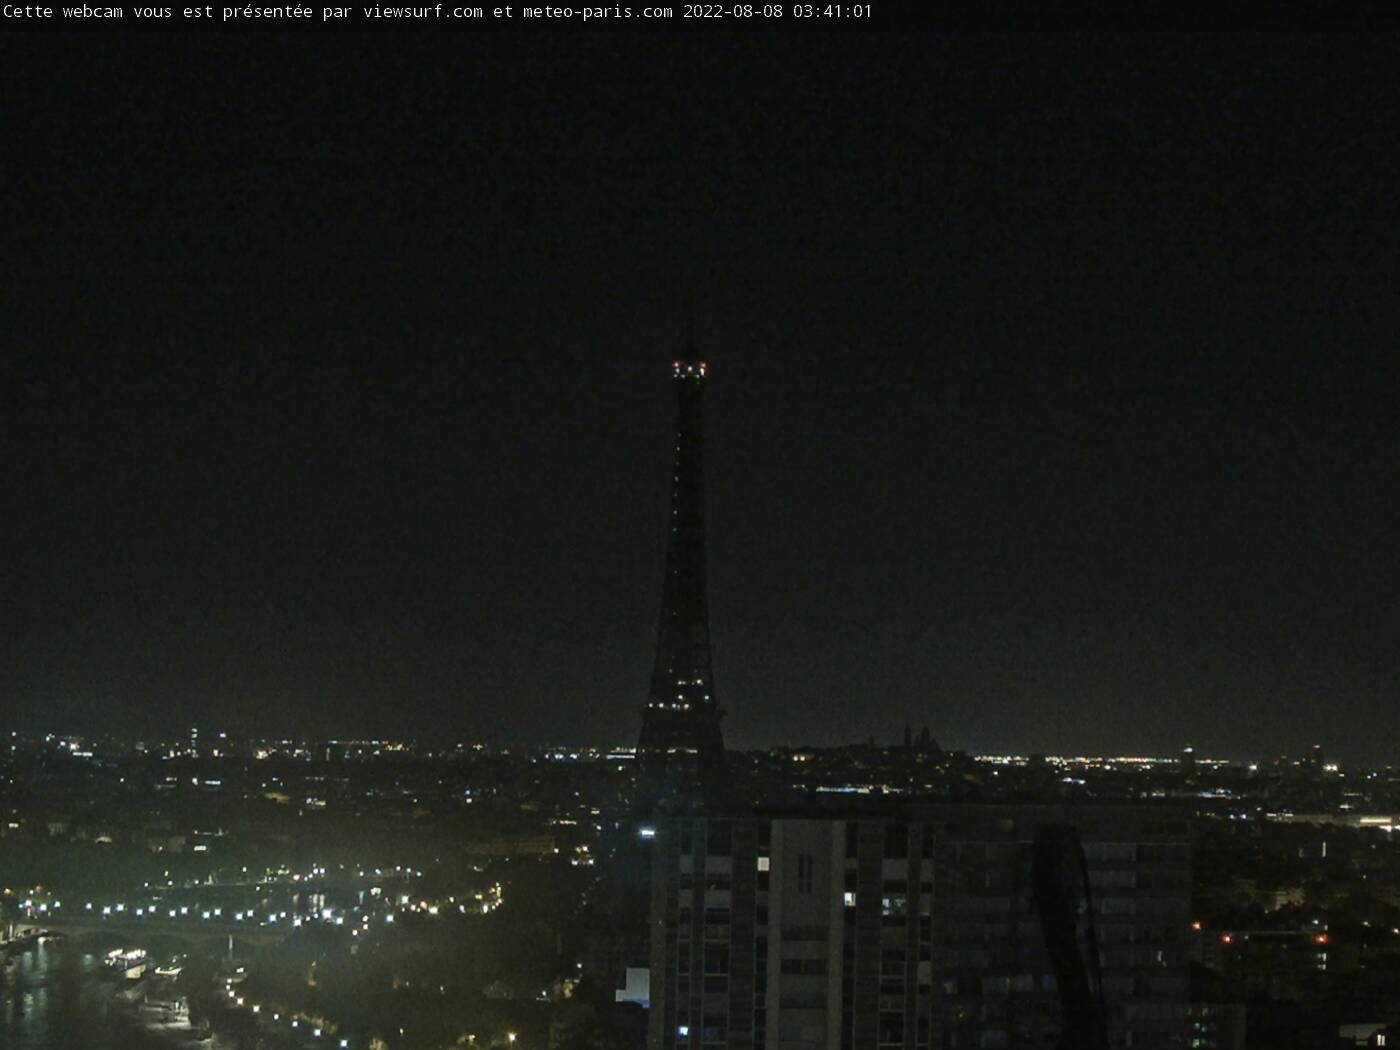 Paris Eiffelturm webcam Live